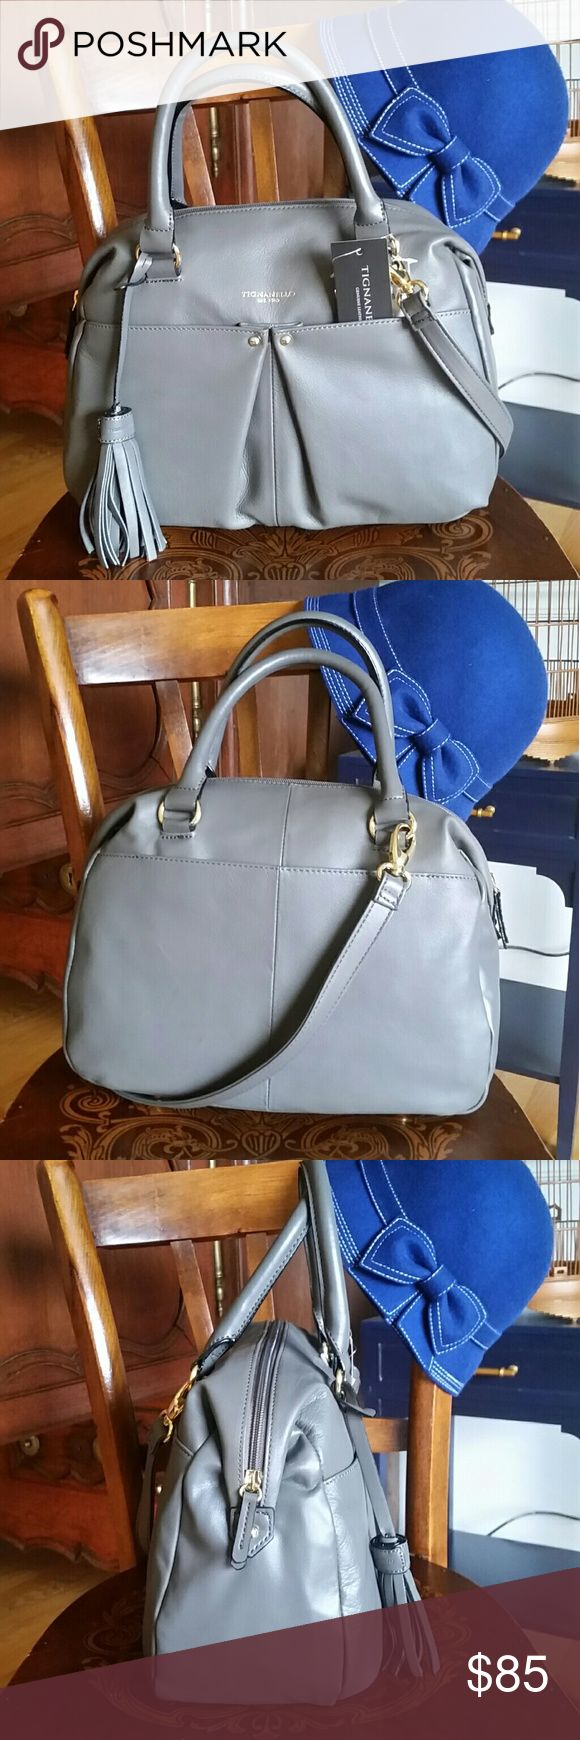 Tignanello gray handbag, SO CUTE, NWT!!! This beautiful girl is even better in person. Perfect size and really beautiful. Tignanello Bags Shoulder Bags